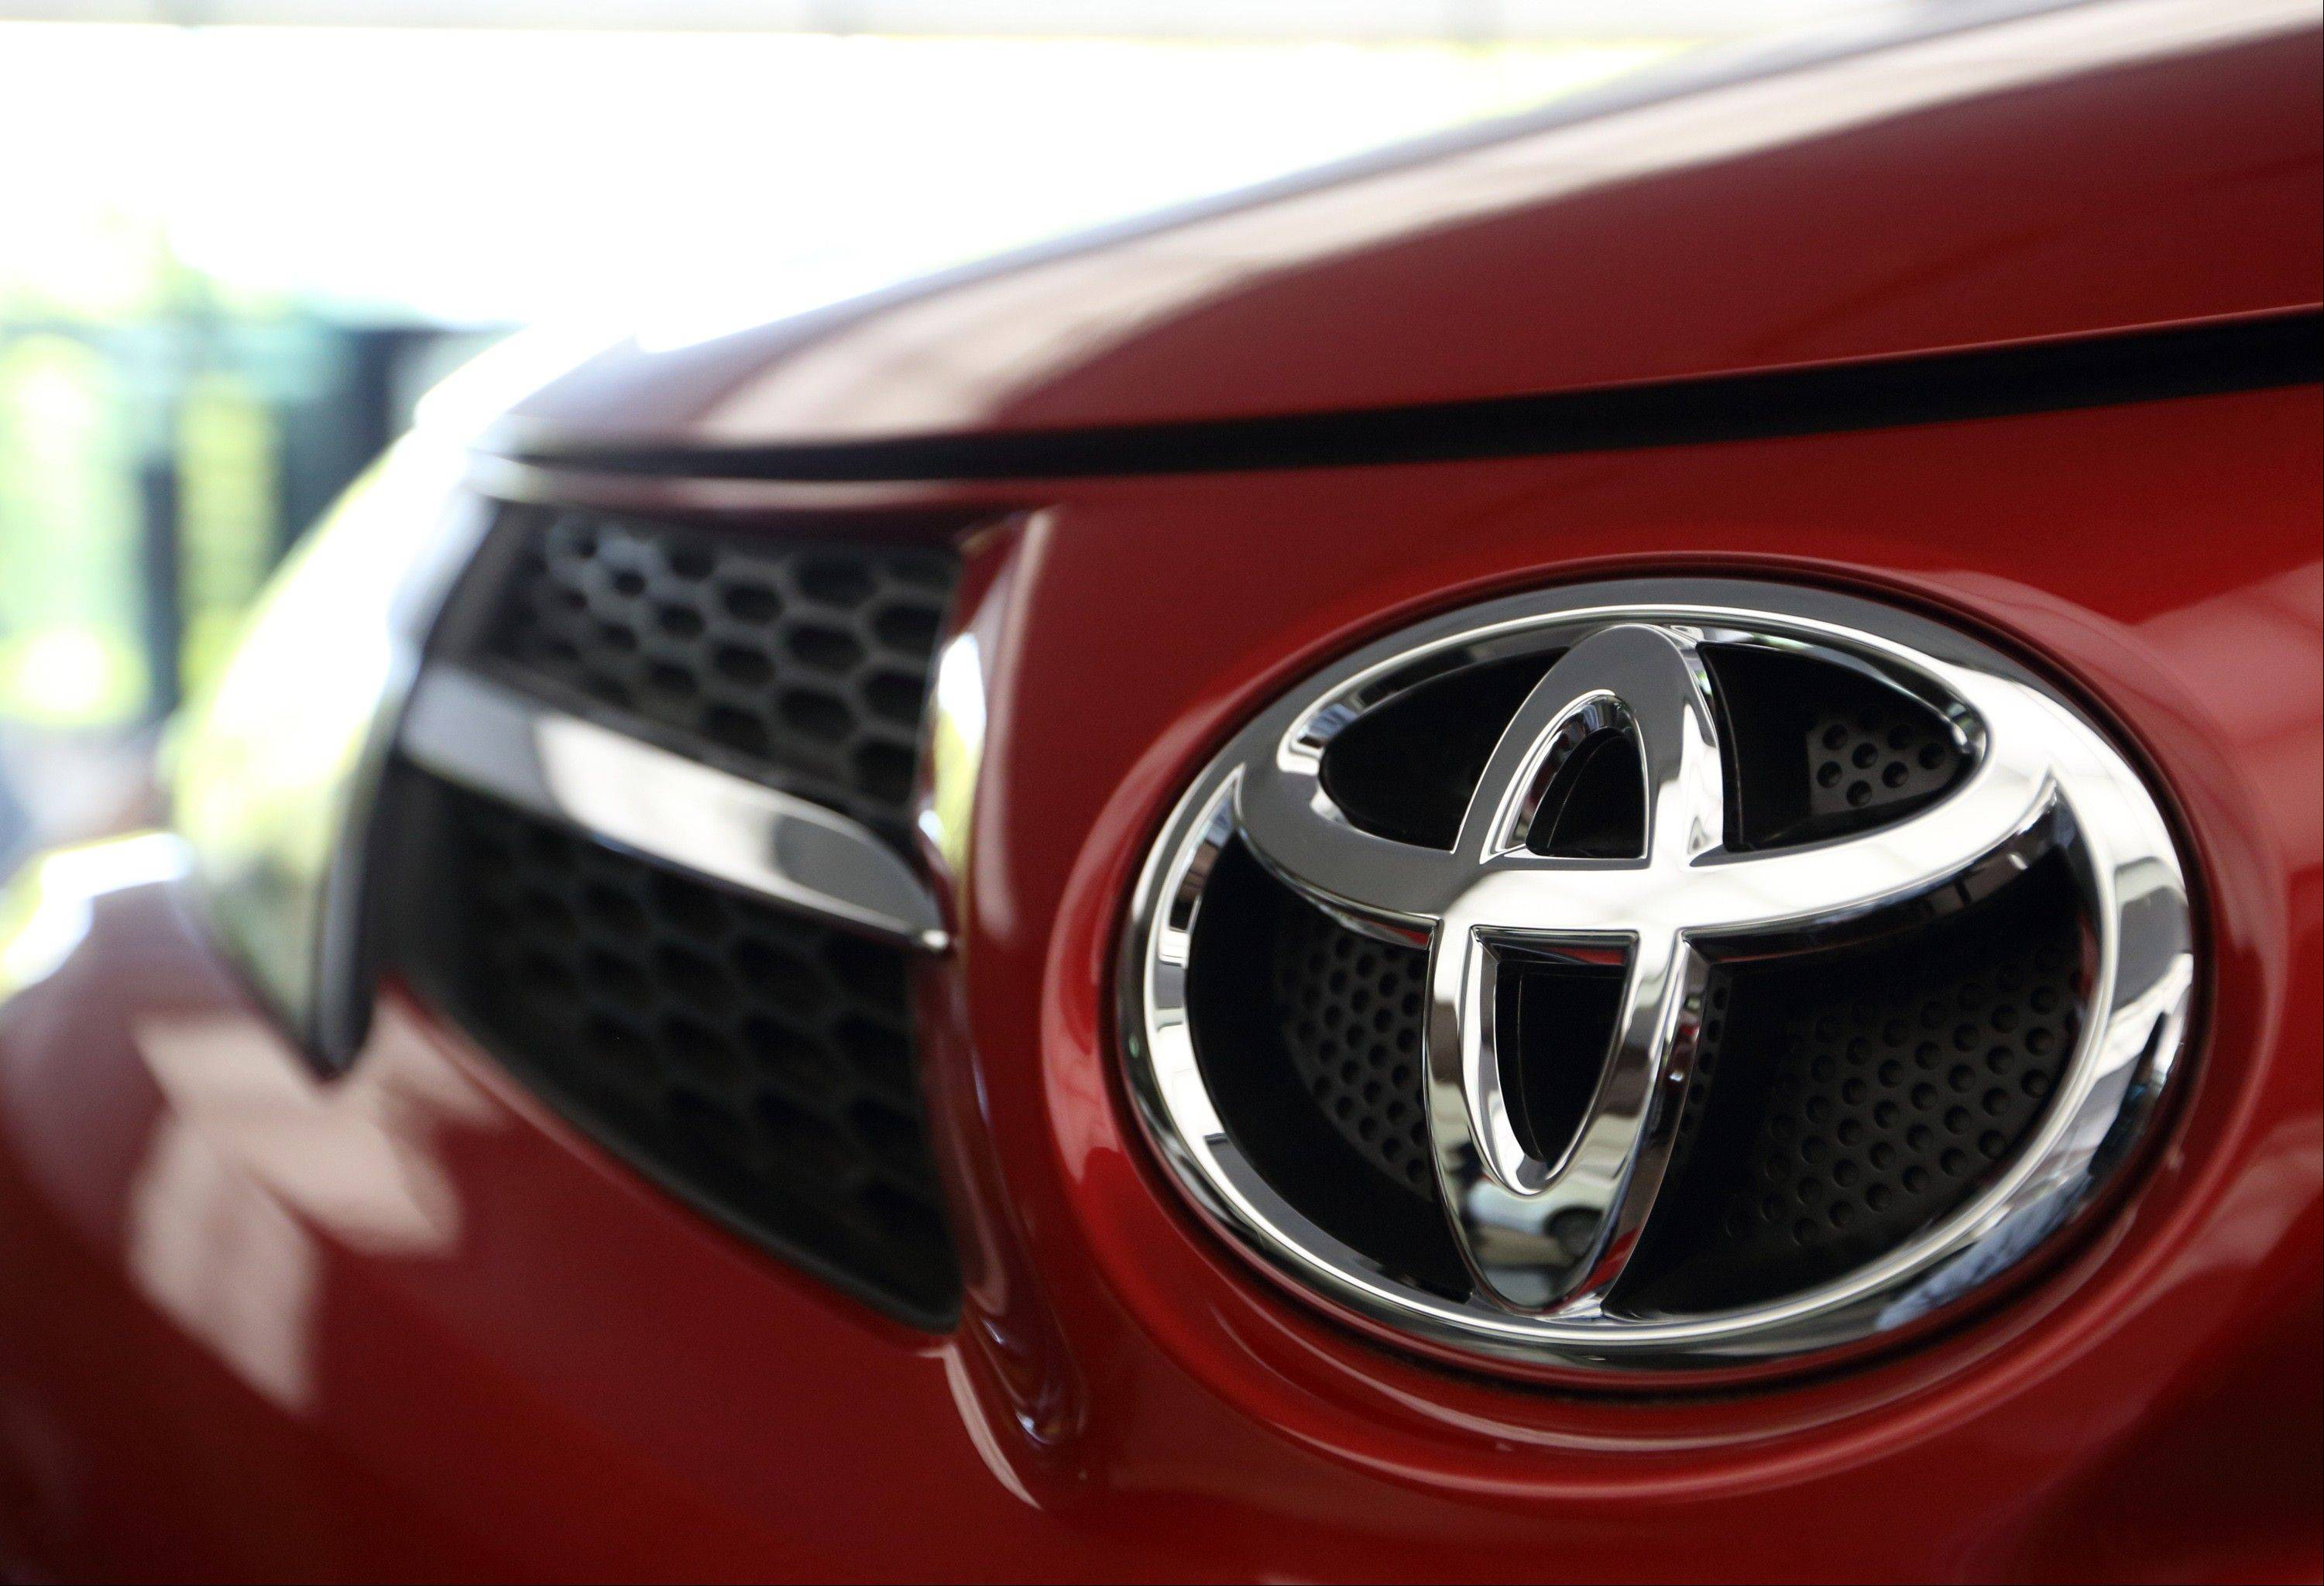 Toyota says it is hiring slightly more new workers than first expected as it increases production at its southwestern Indiana factory.